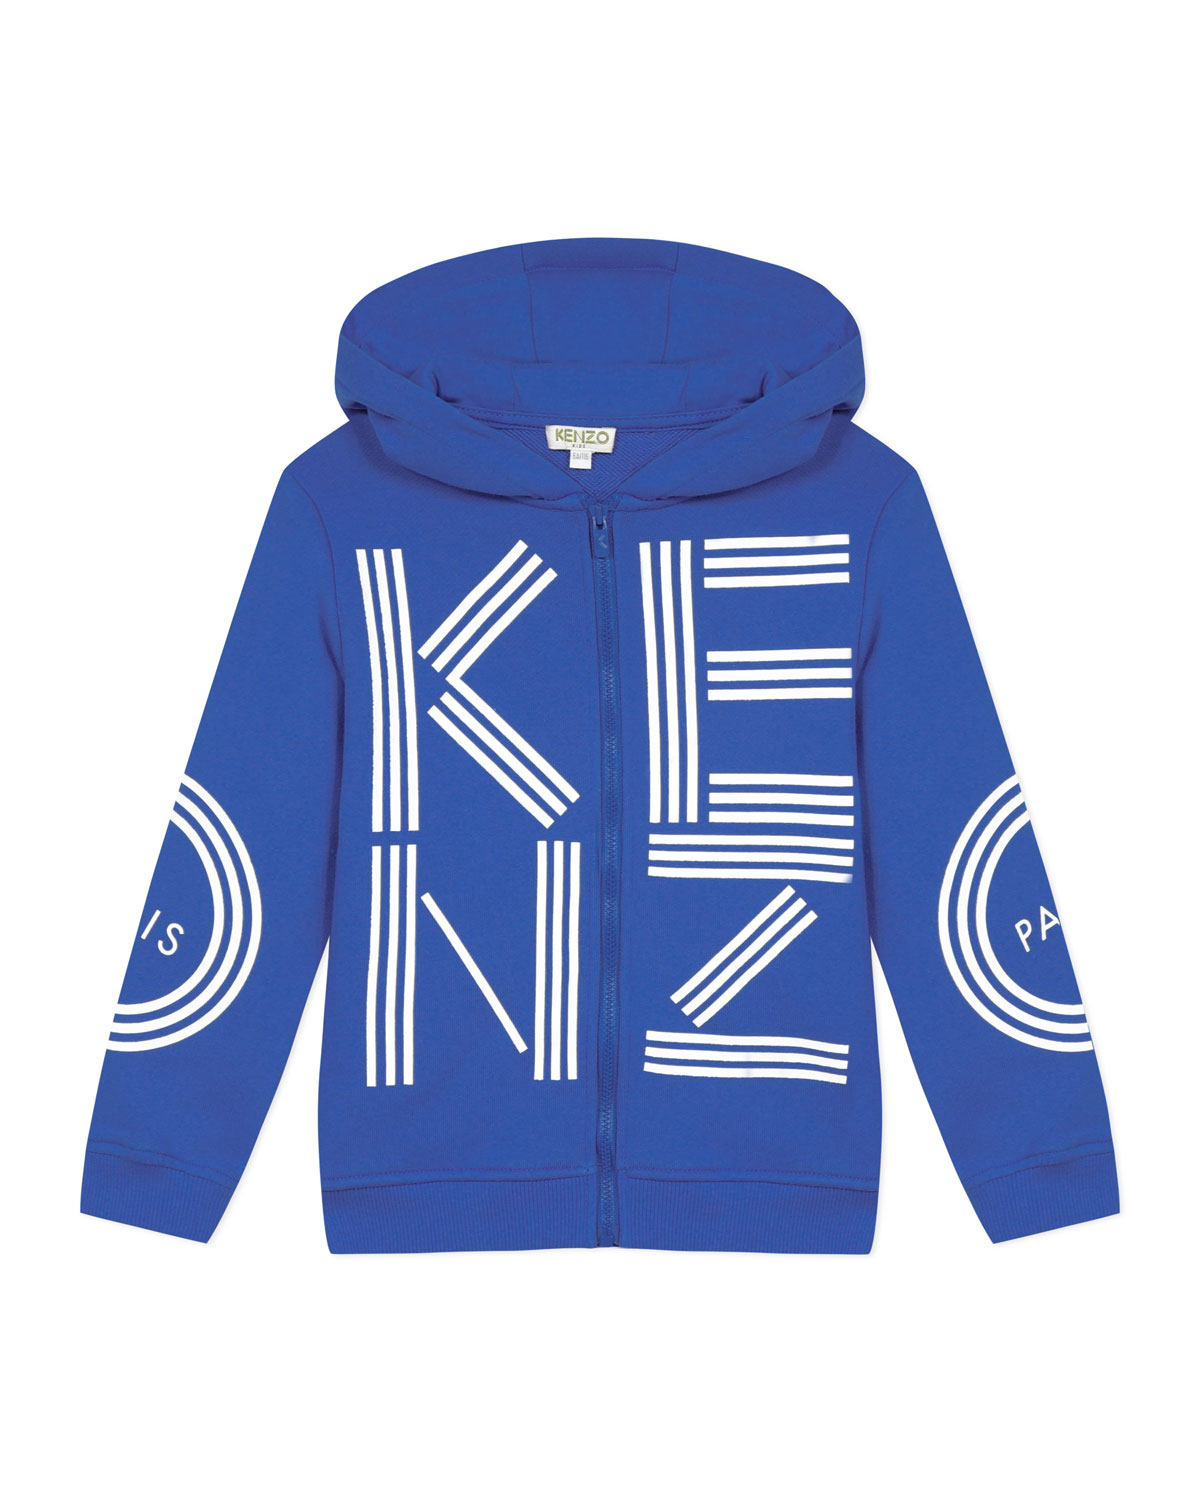 Kenzo Boy's Logo Print Zip-Front Hooded Jacket, Size 2-6